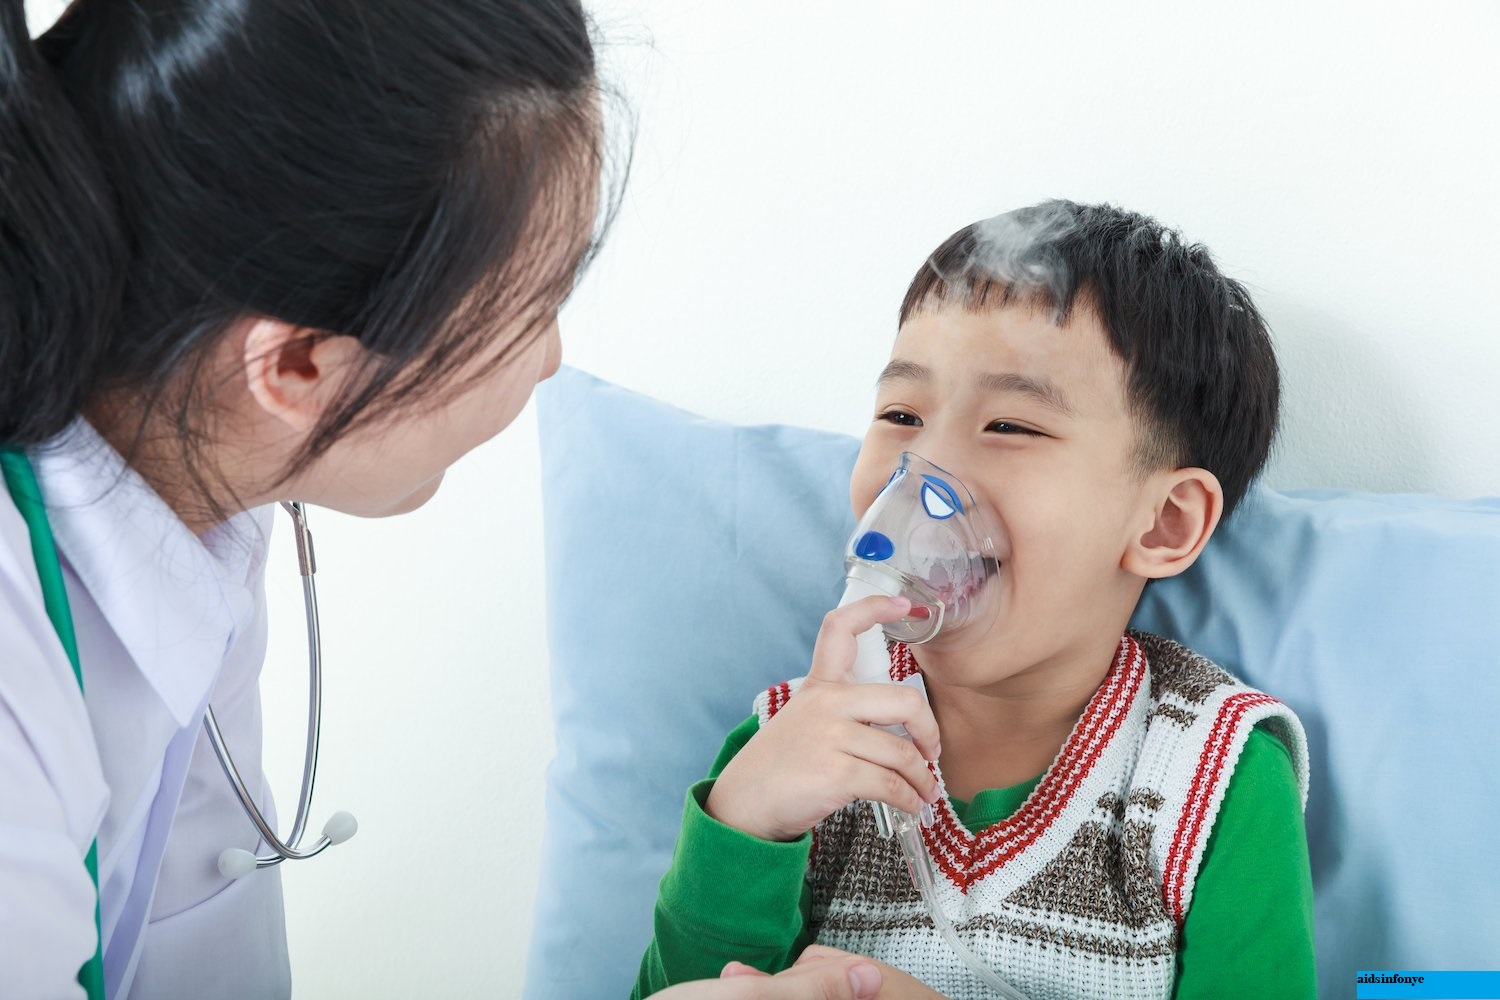 Medical aids : Nebulizers